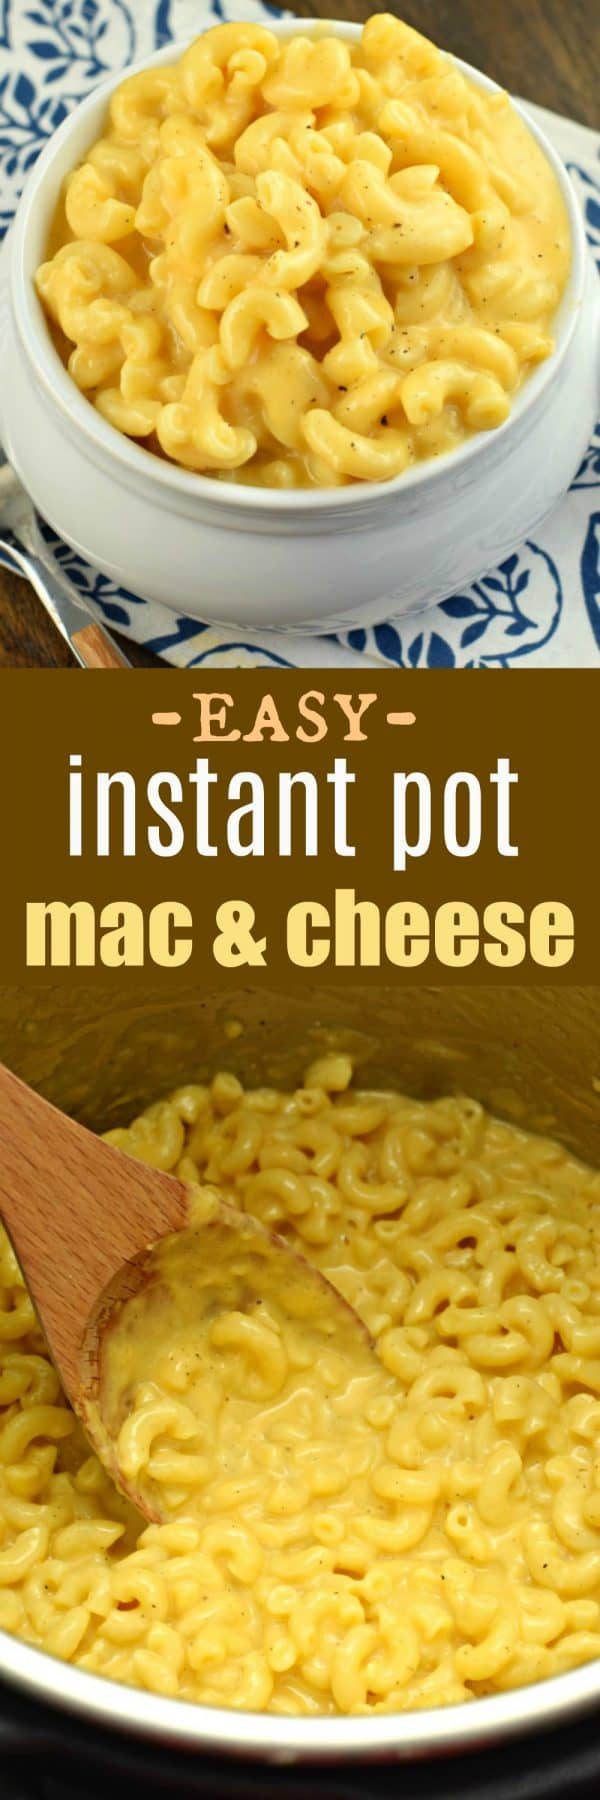 Instant Pot Mac and Cheese Recipe: creamy, delicious, ready in 10 minutes! #pressurecooker #instantpot #macaroni #cheese